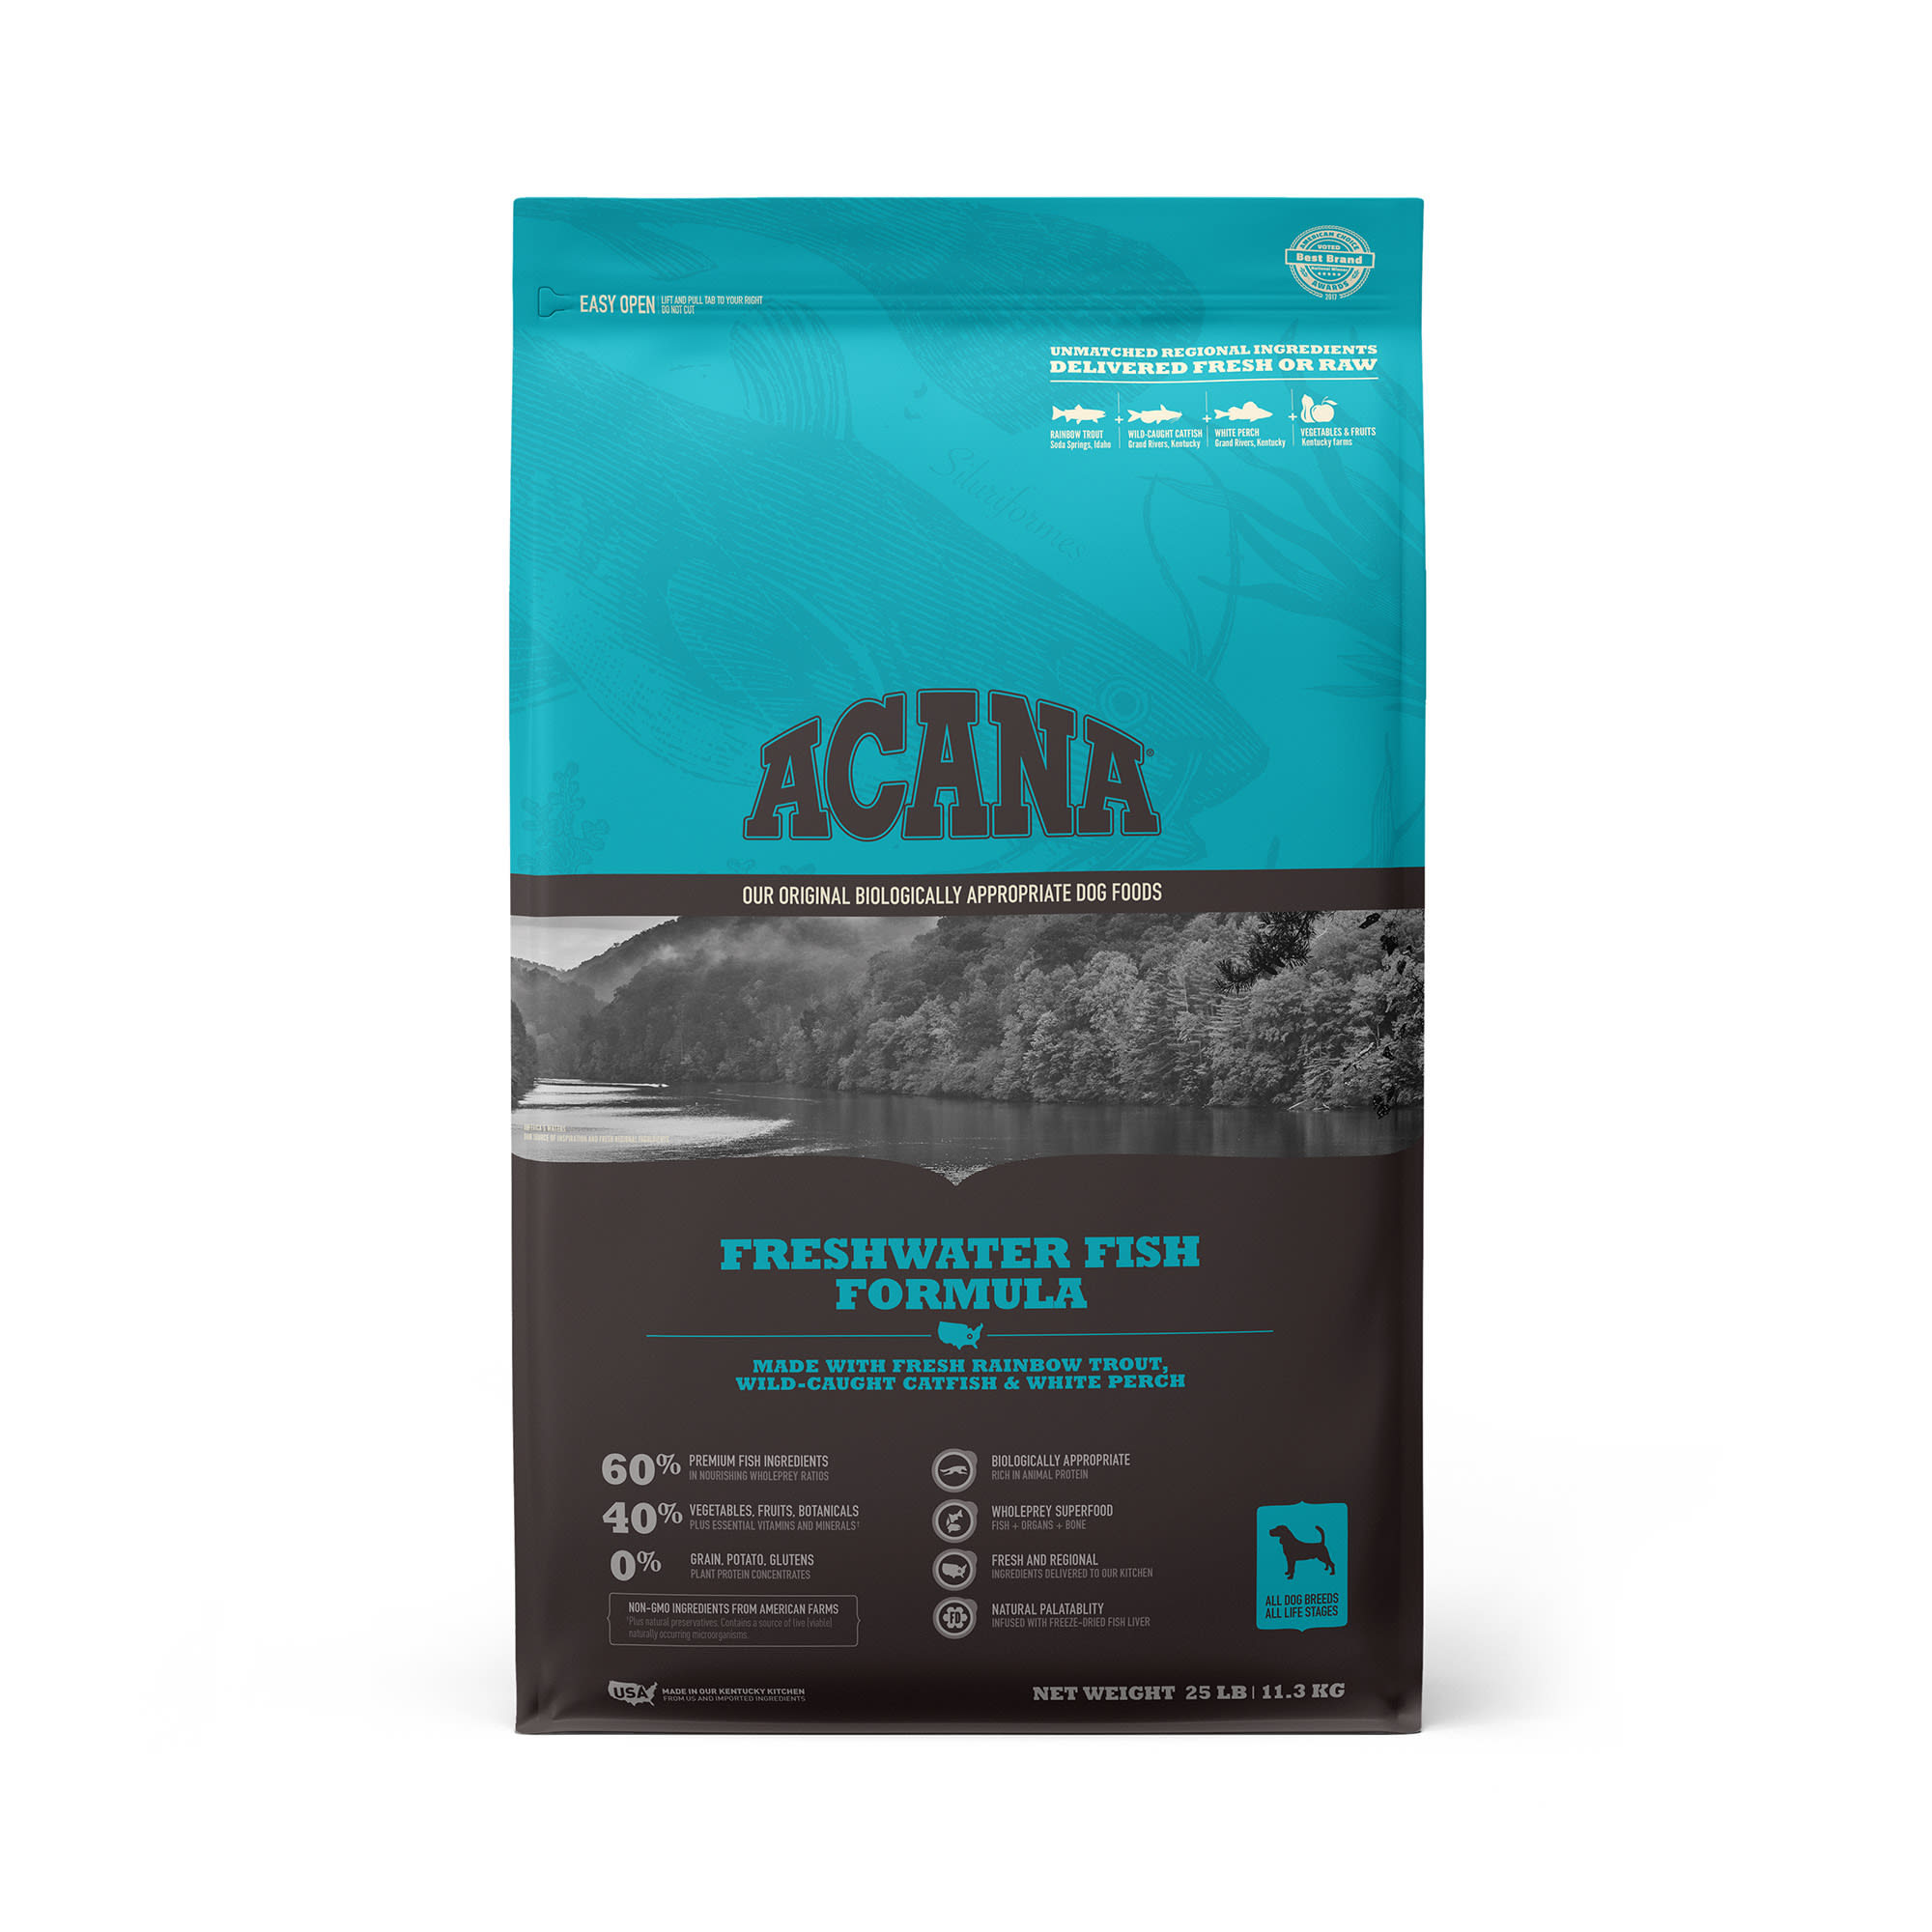 ACANA Grain-Free Freshwater Fish Whole Trout Catfish and Perch Dry Dog Food